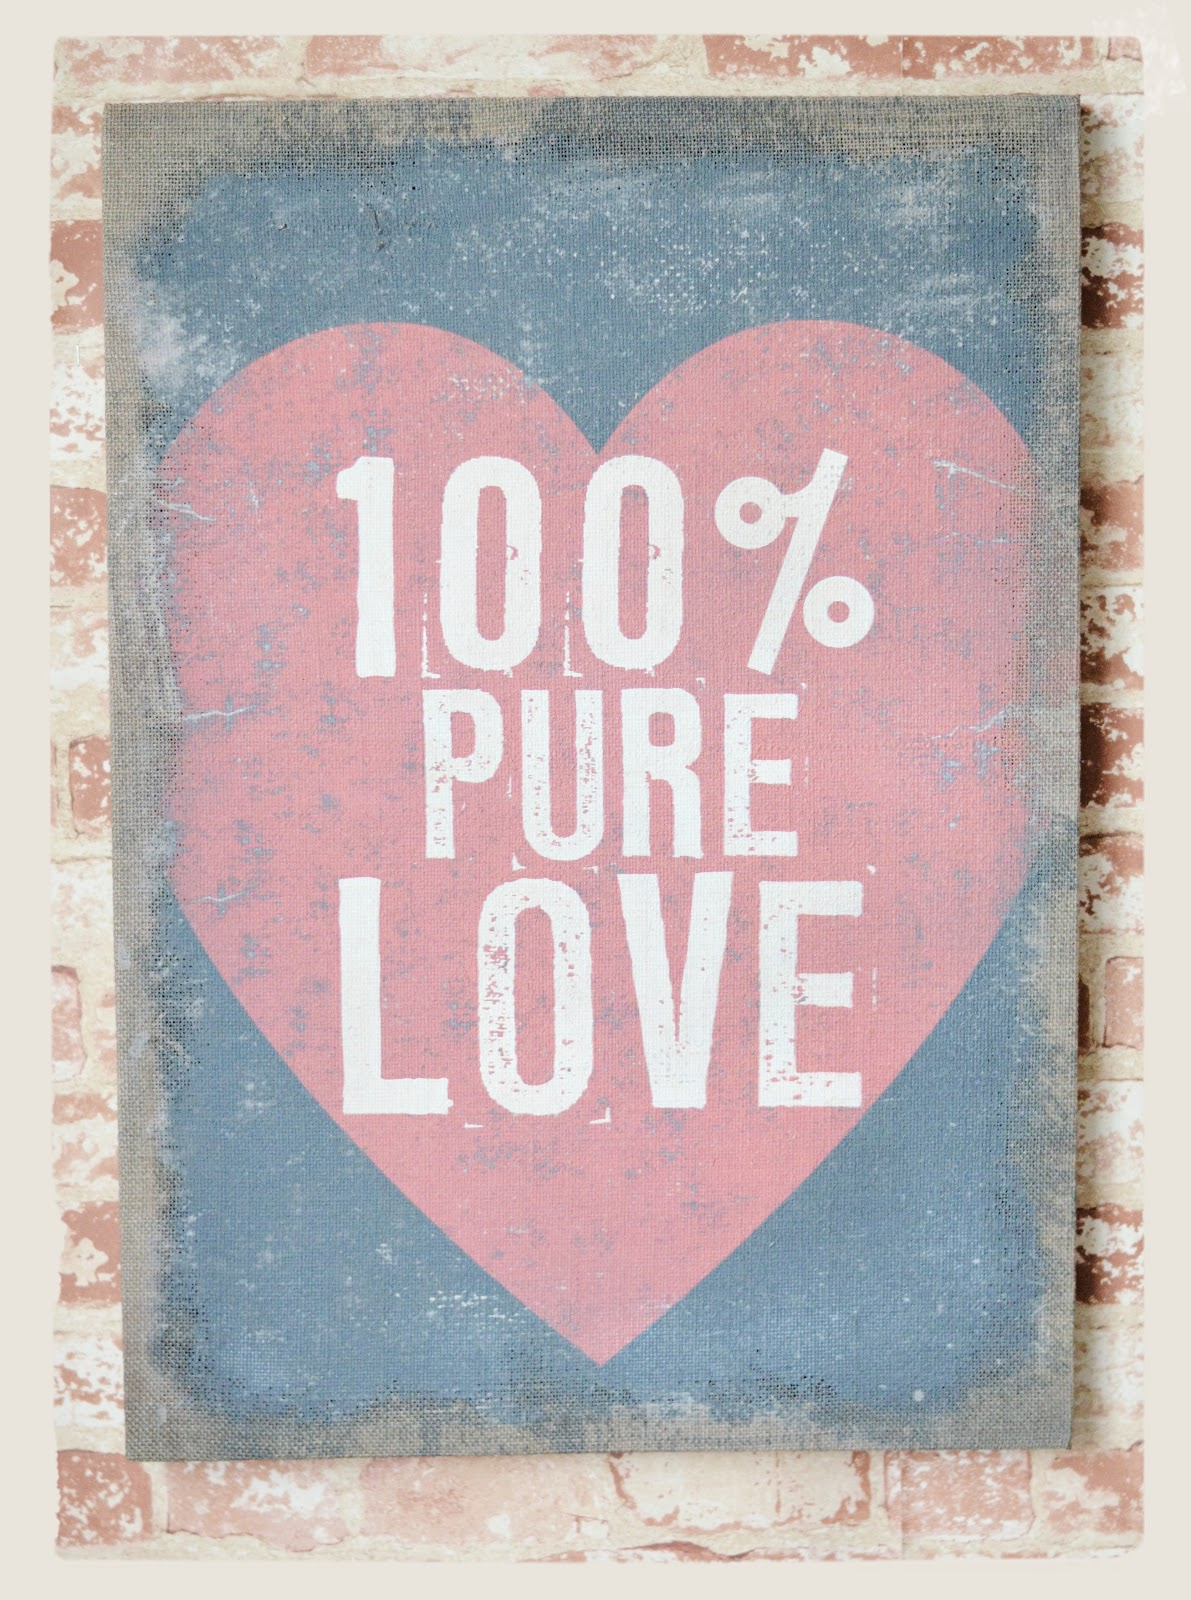 100 pure love lyrics: